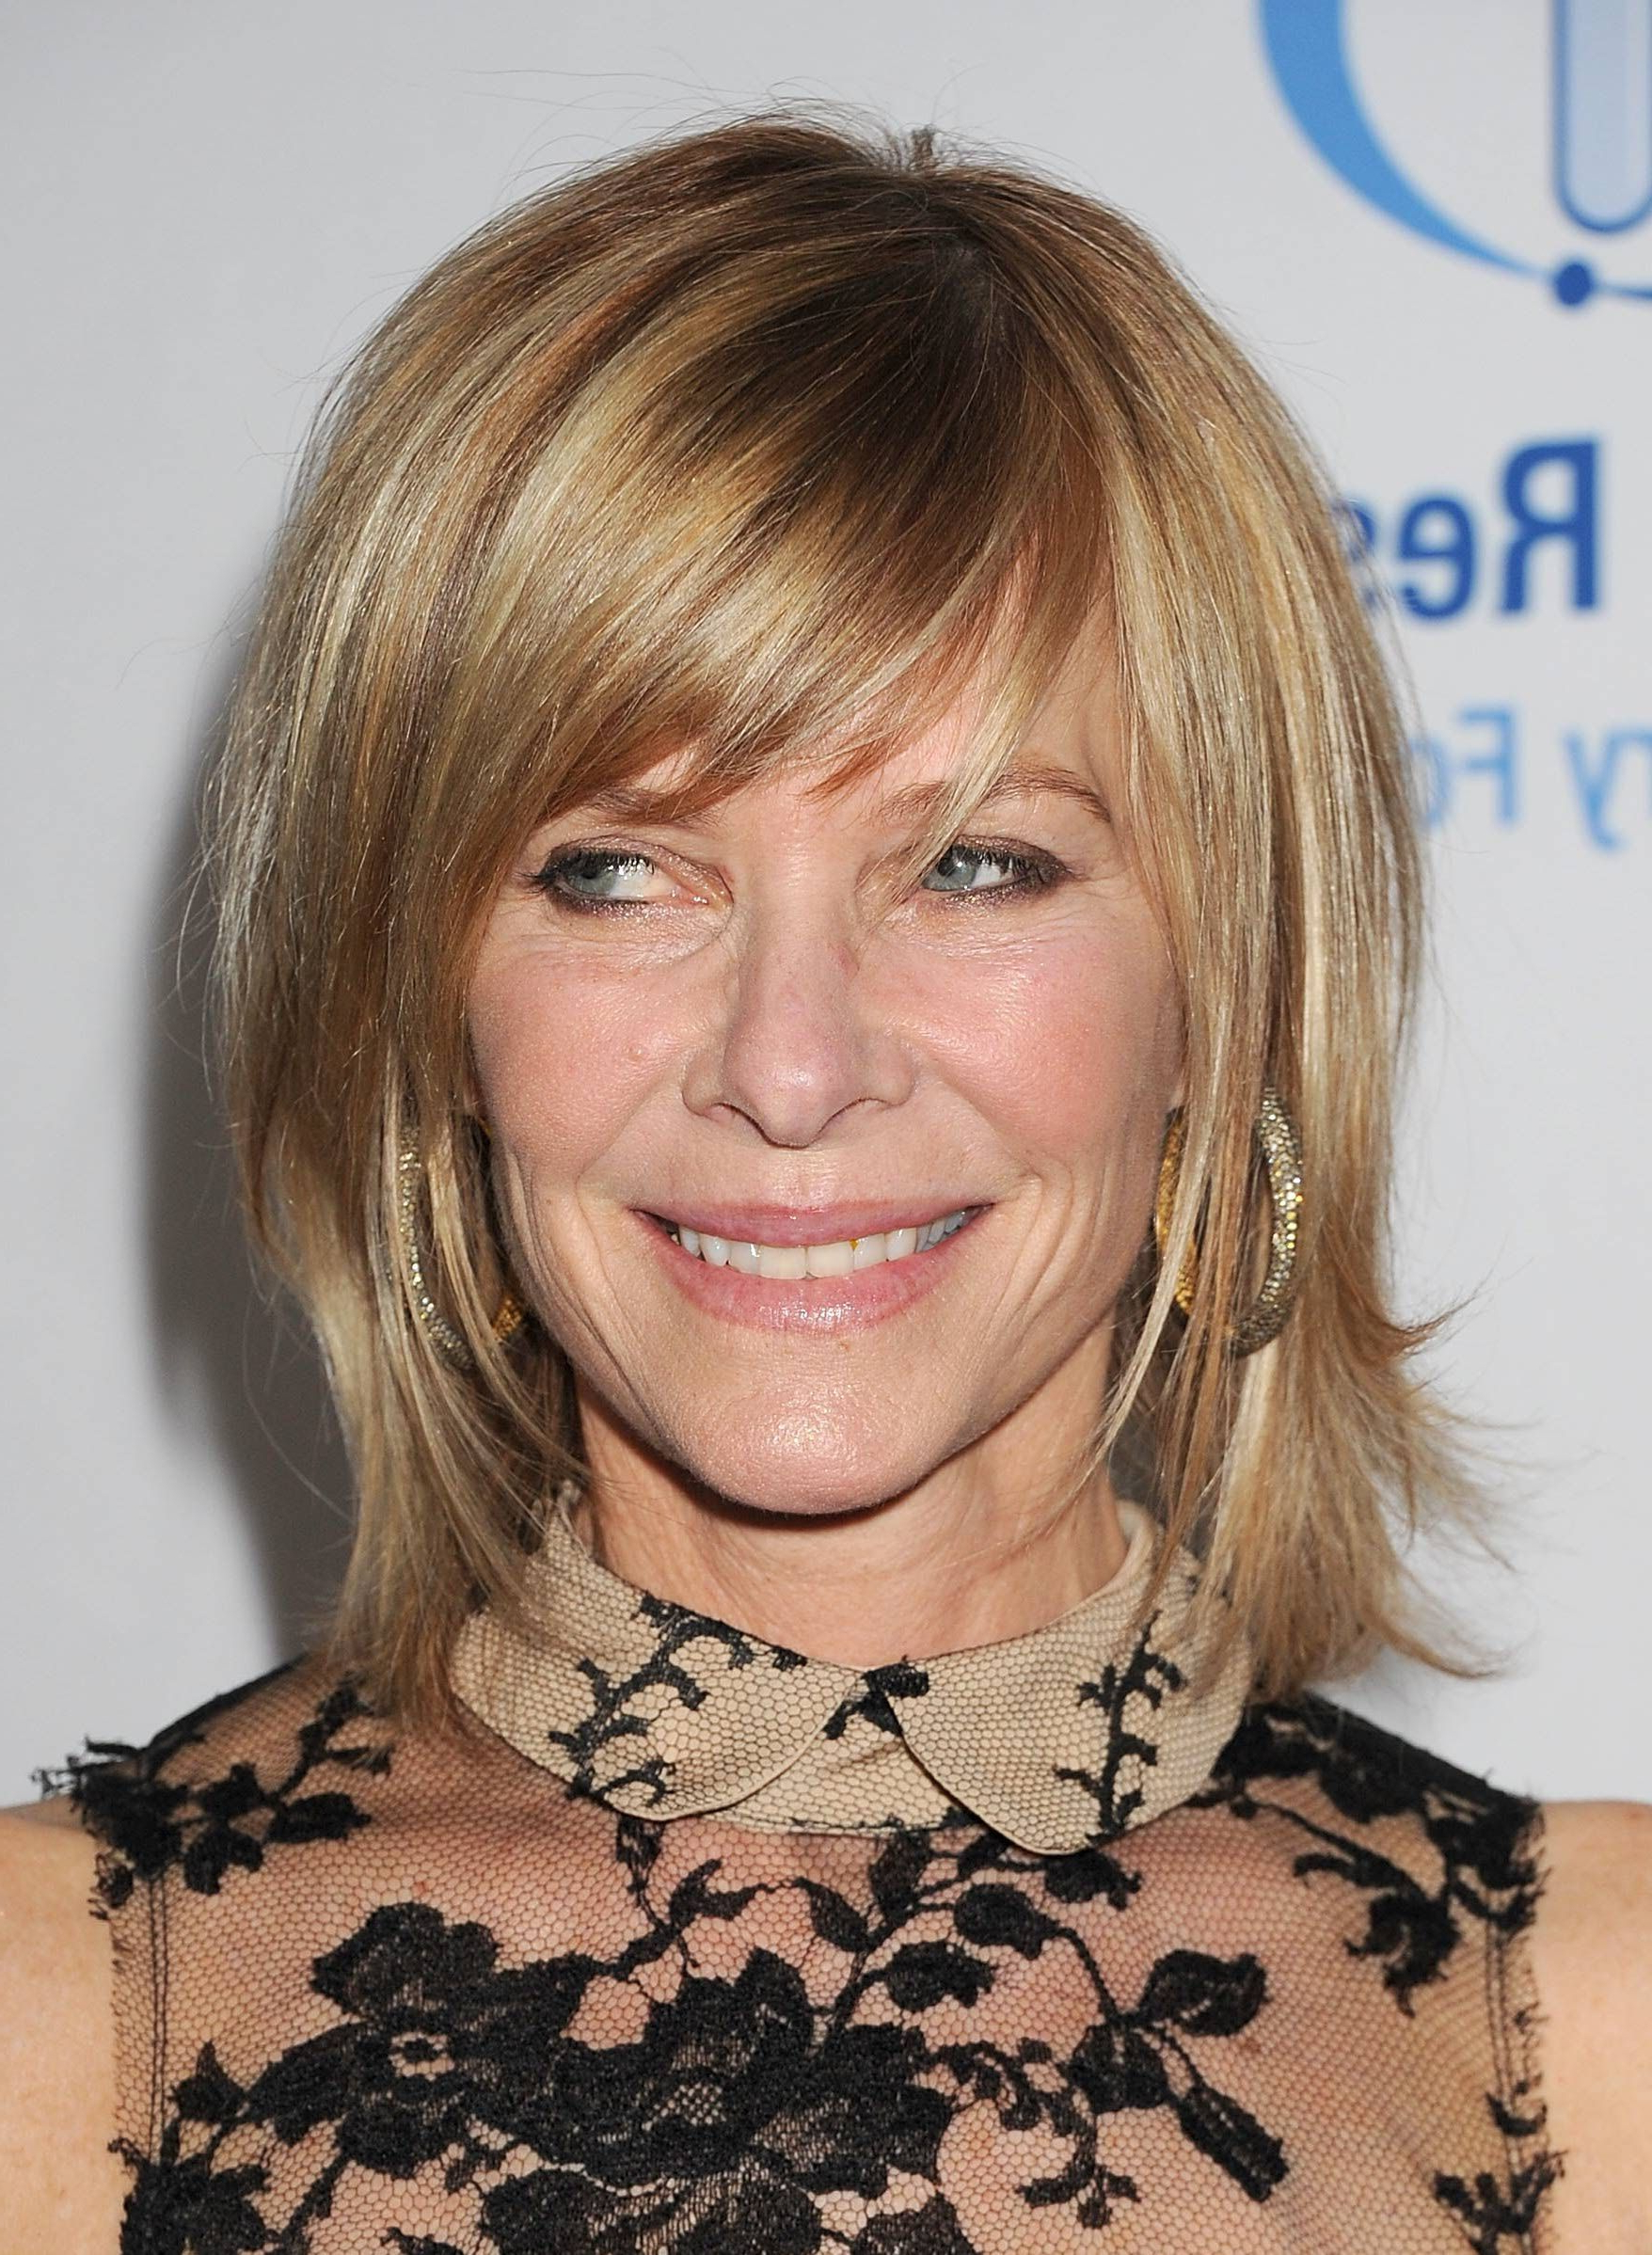 Over Age 50? Check Out These Flattering Hairstyles   Hairstyles throughout Short Bob Hairstyles For Over 50S